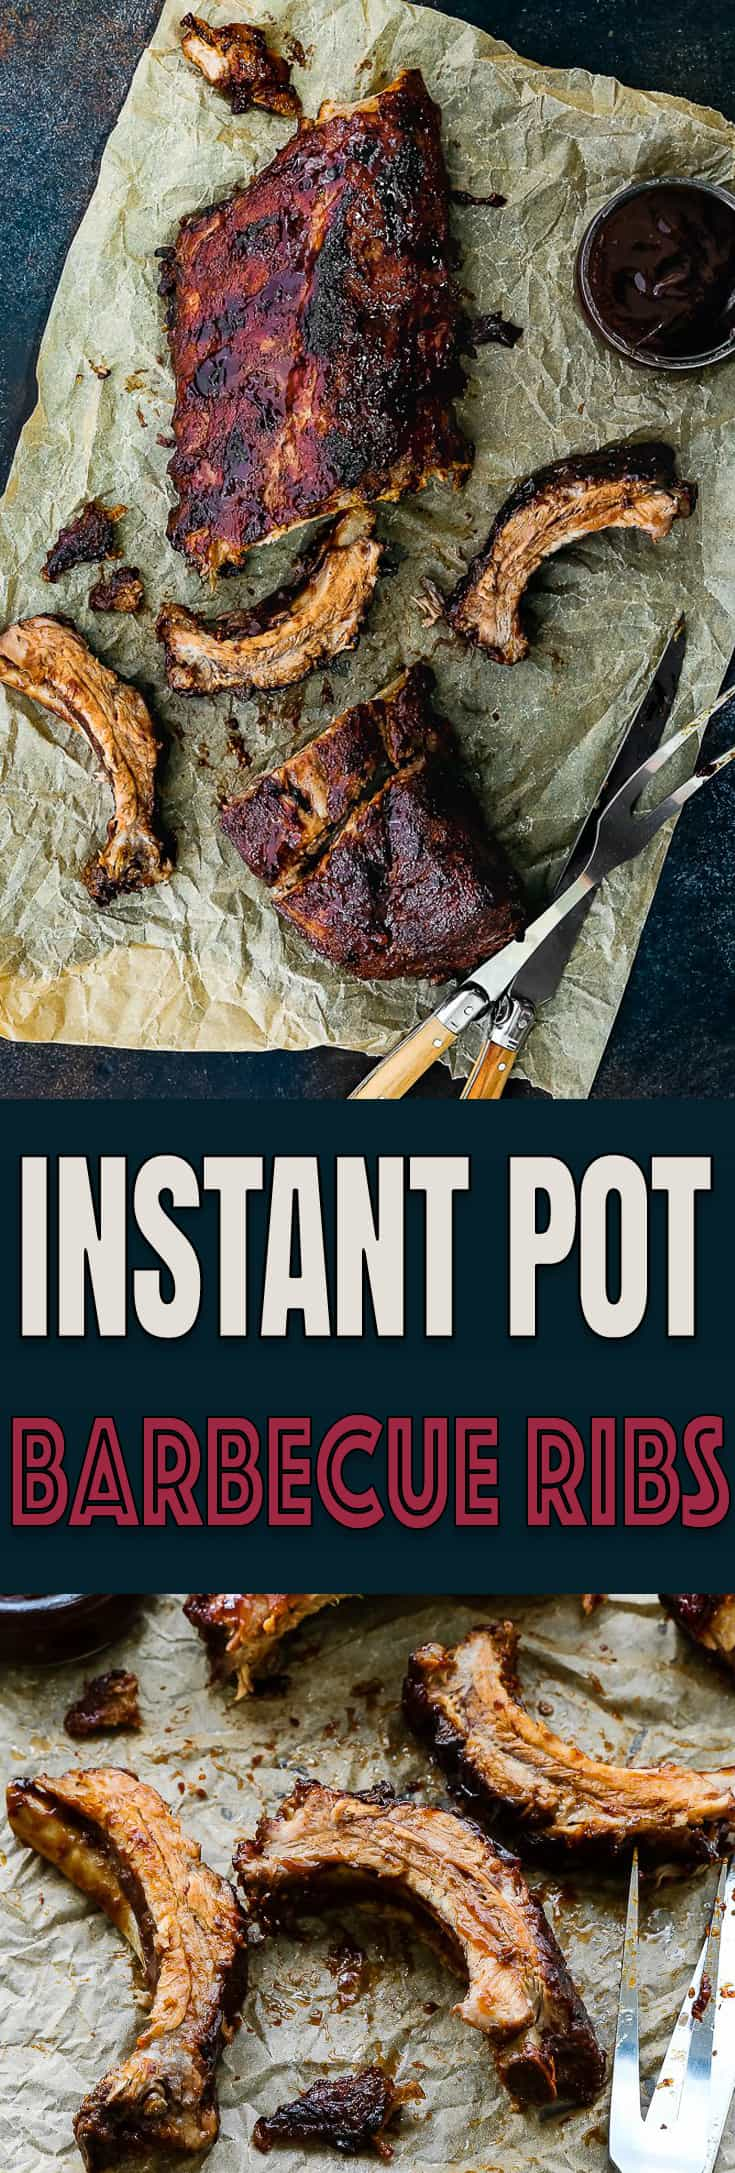 These Instant Pot Barbecue Ribs are sticky, saucy, savory, sweet, and sooo tender. Fall-off-the-bone tender. They are done in 30 minutes, with just 5 ingredients. http://mommyshomecooking.com